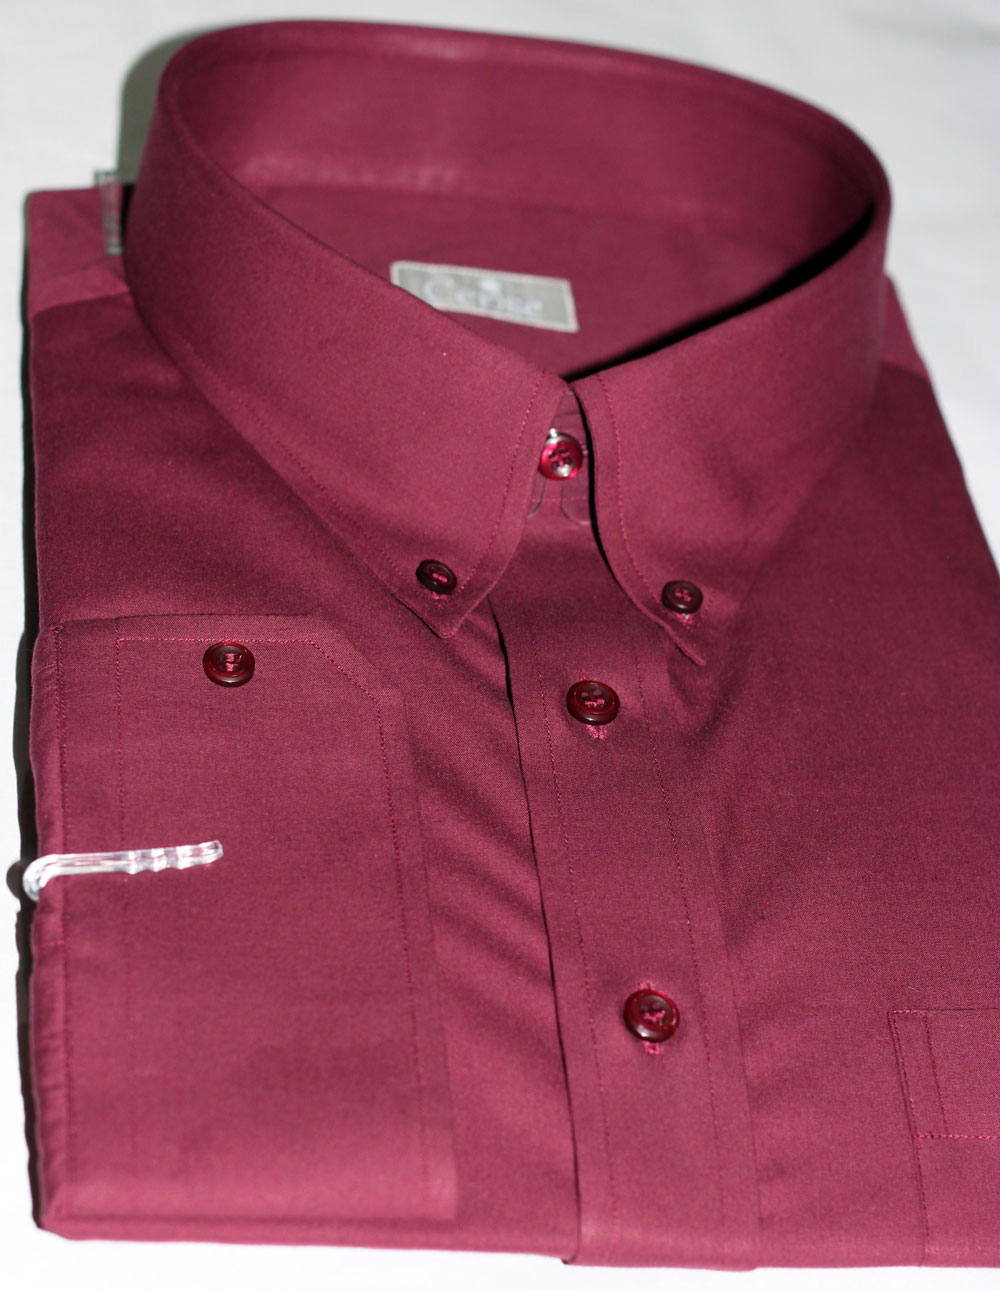 Shirt Dress on Burgundy Dress Shirts   Men S Custom Burgundy Dress Shirts